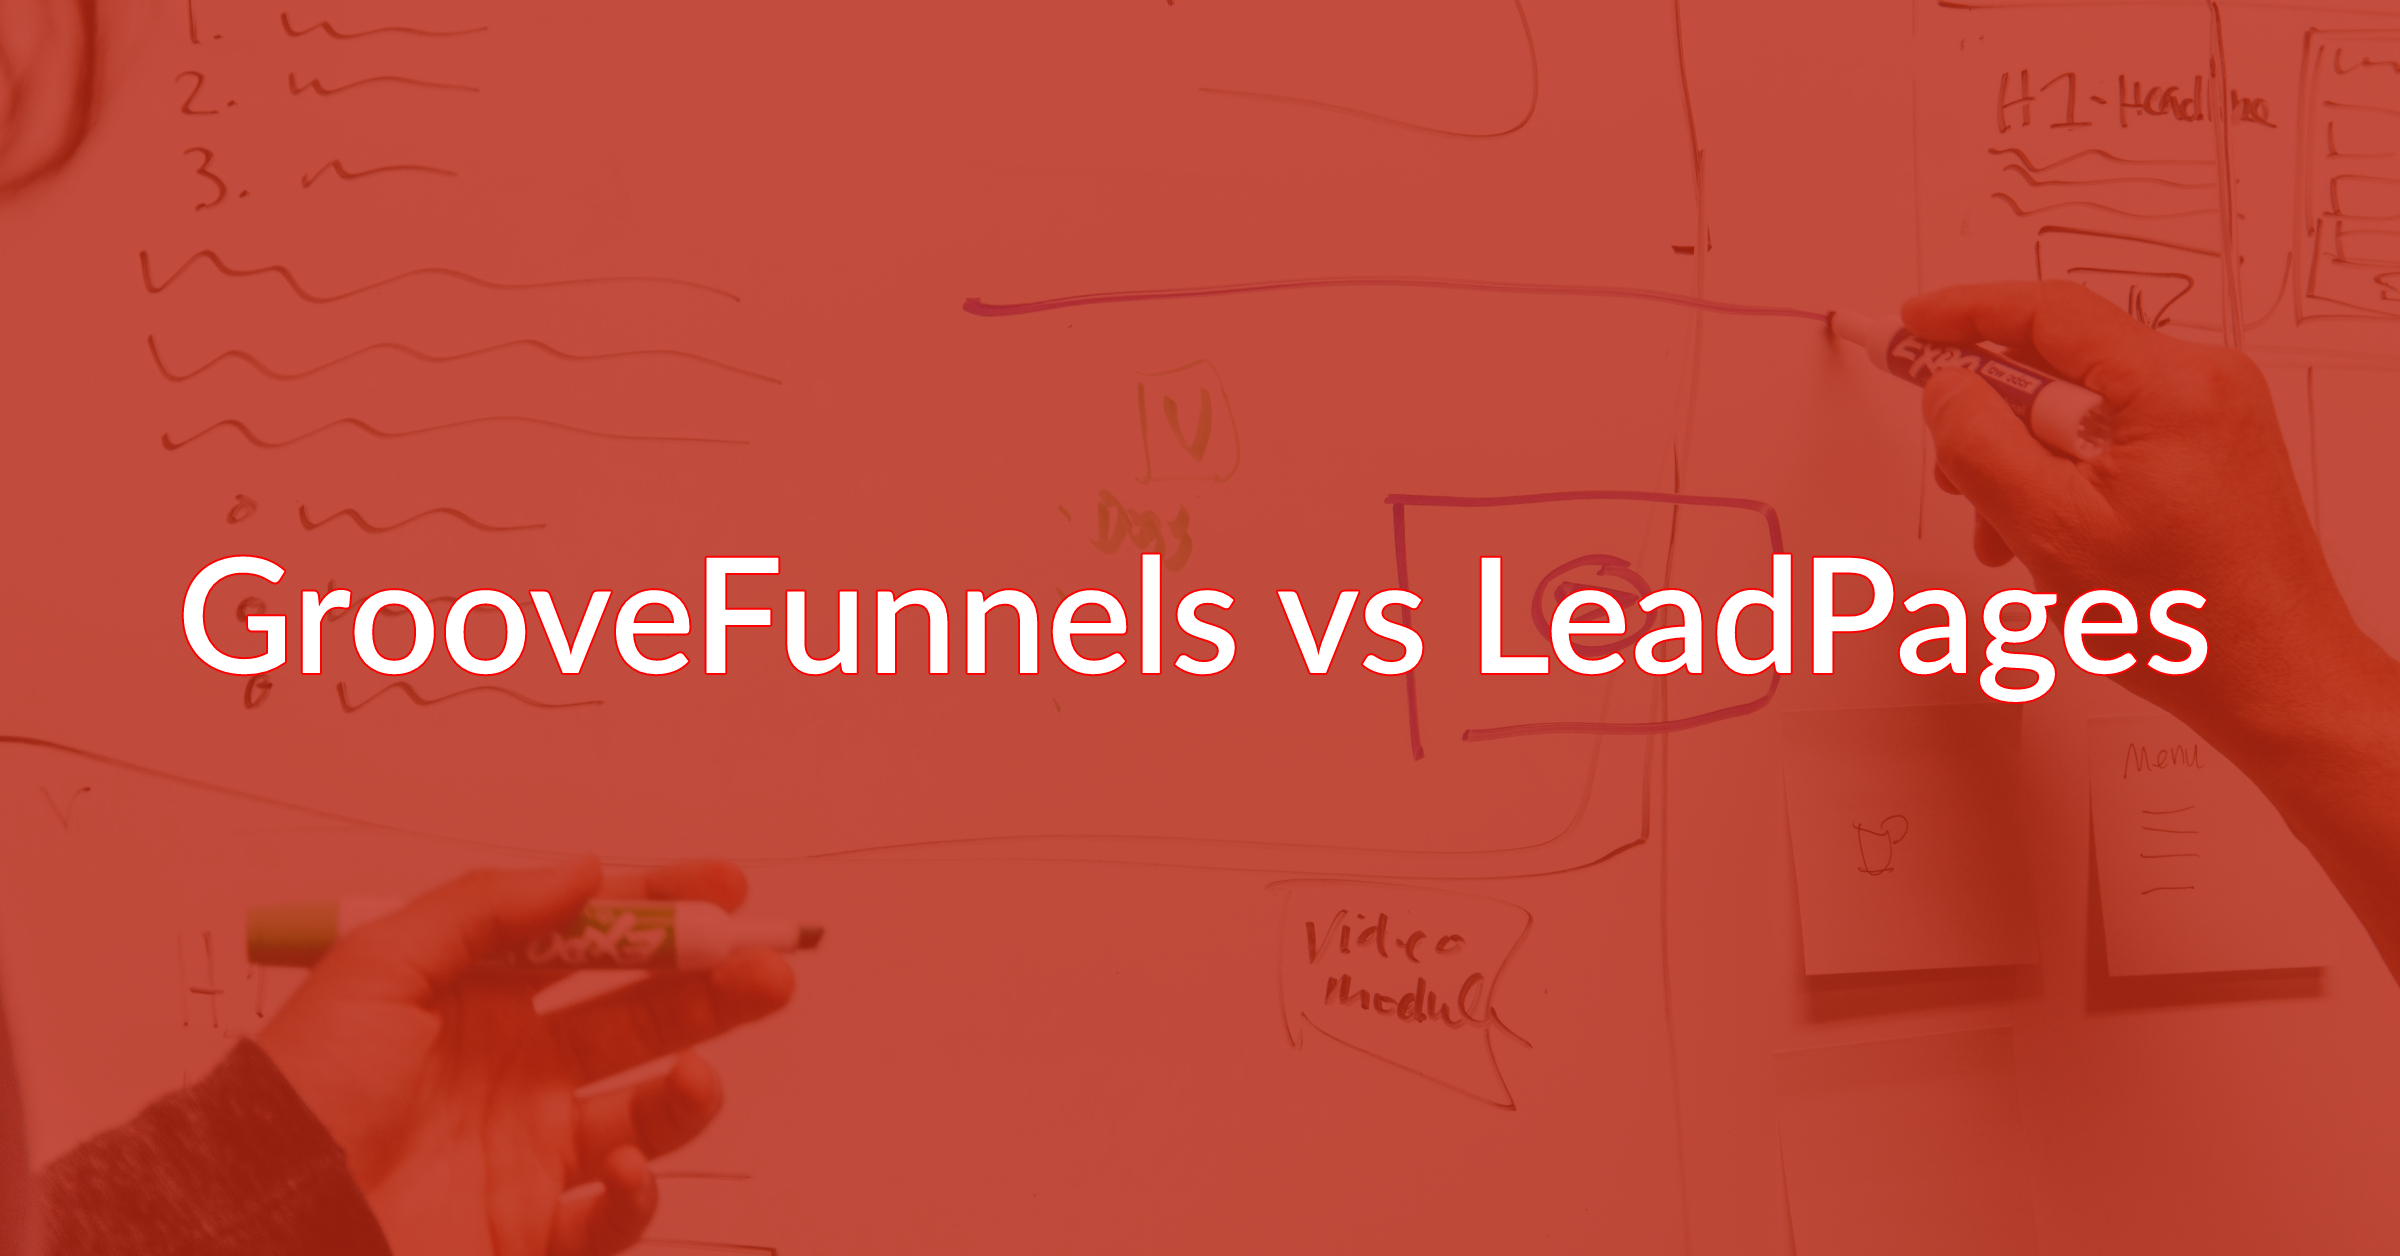 GrooveFunnels vs LeadPages: Which Converts More Leads?